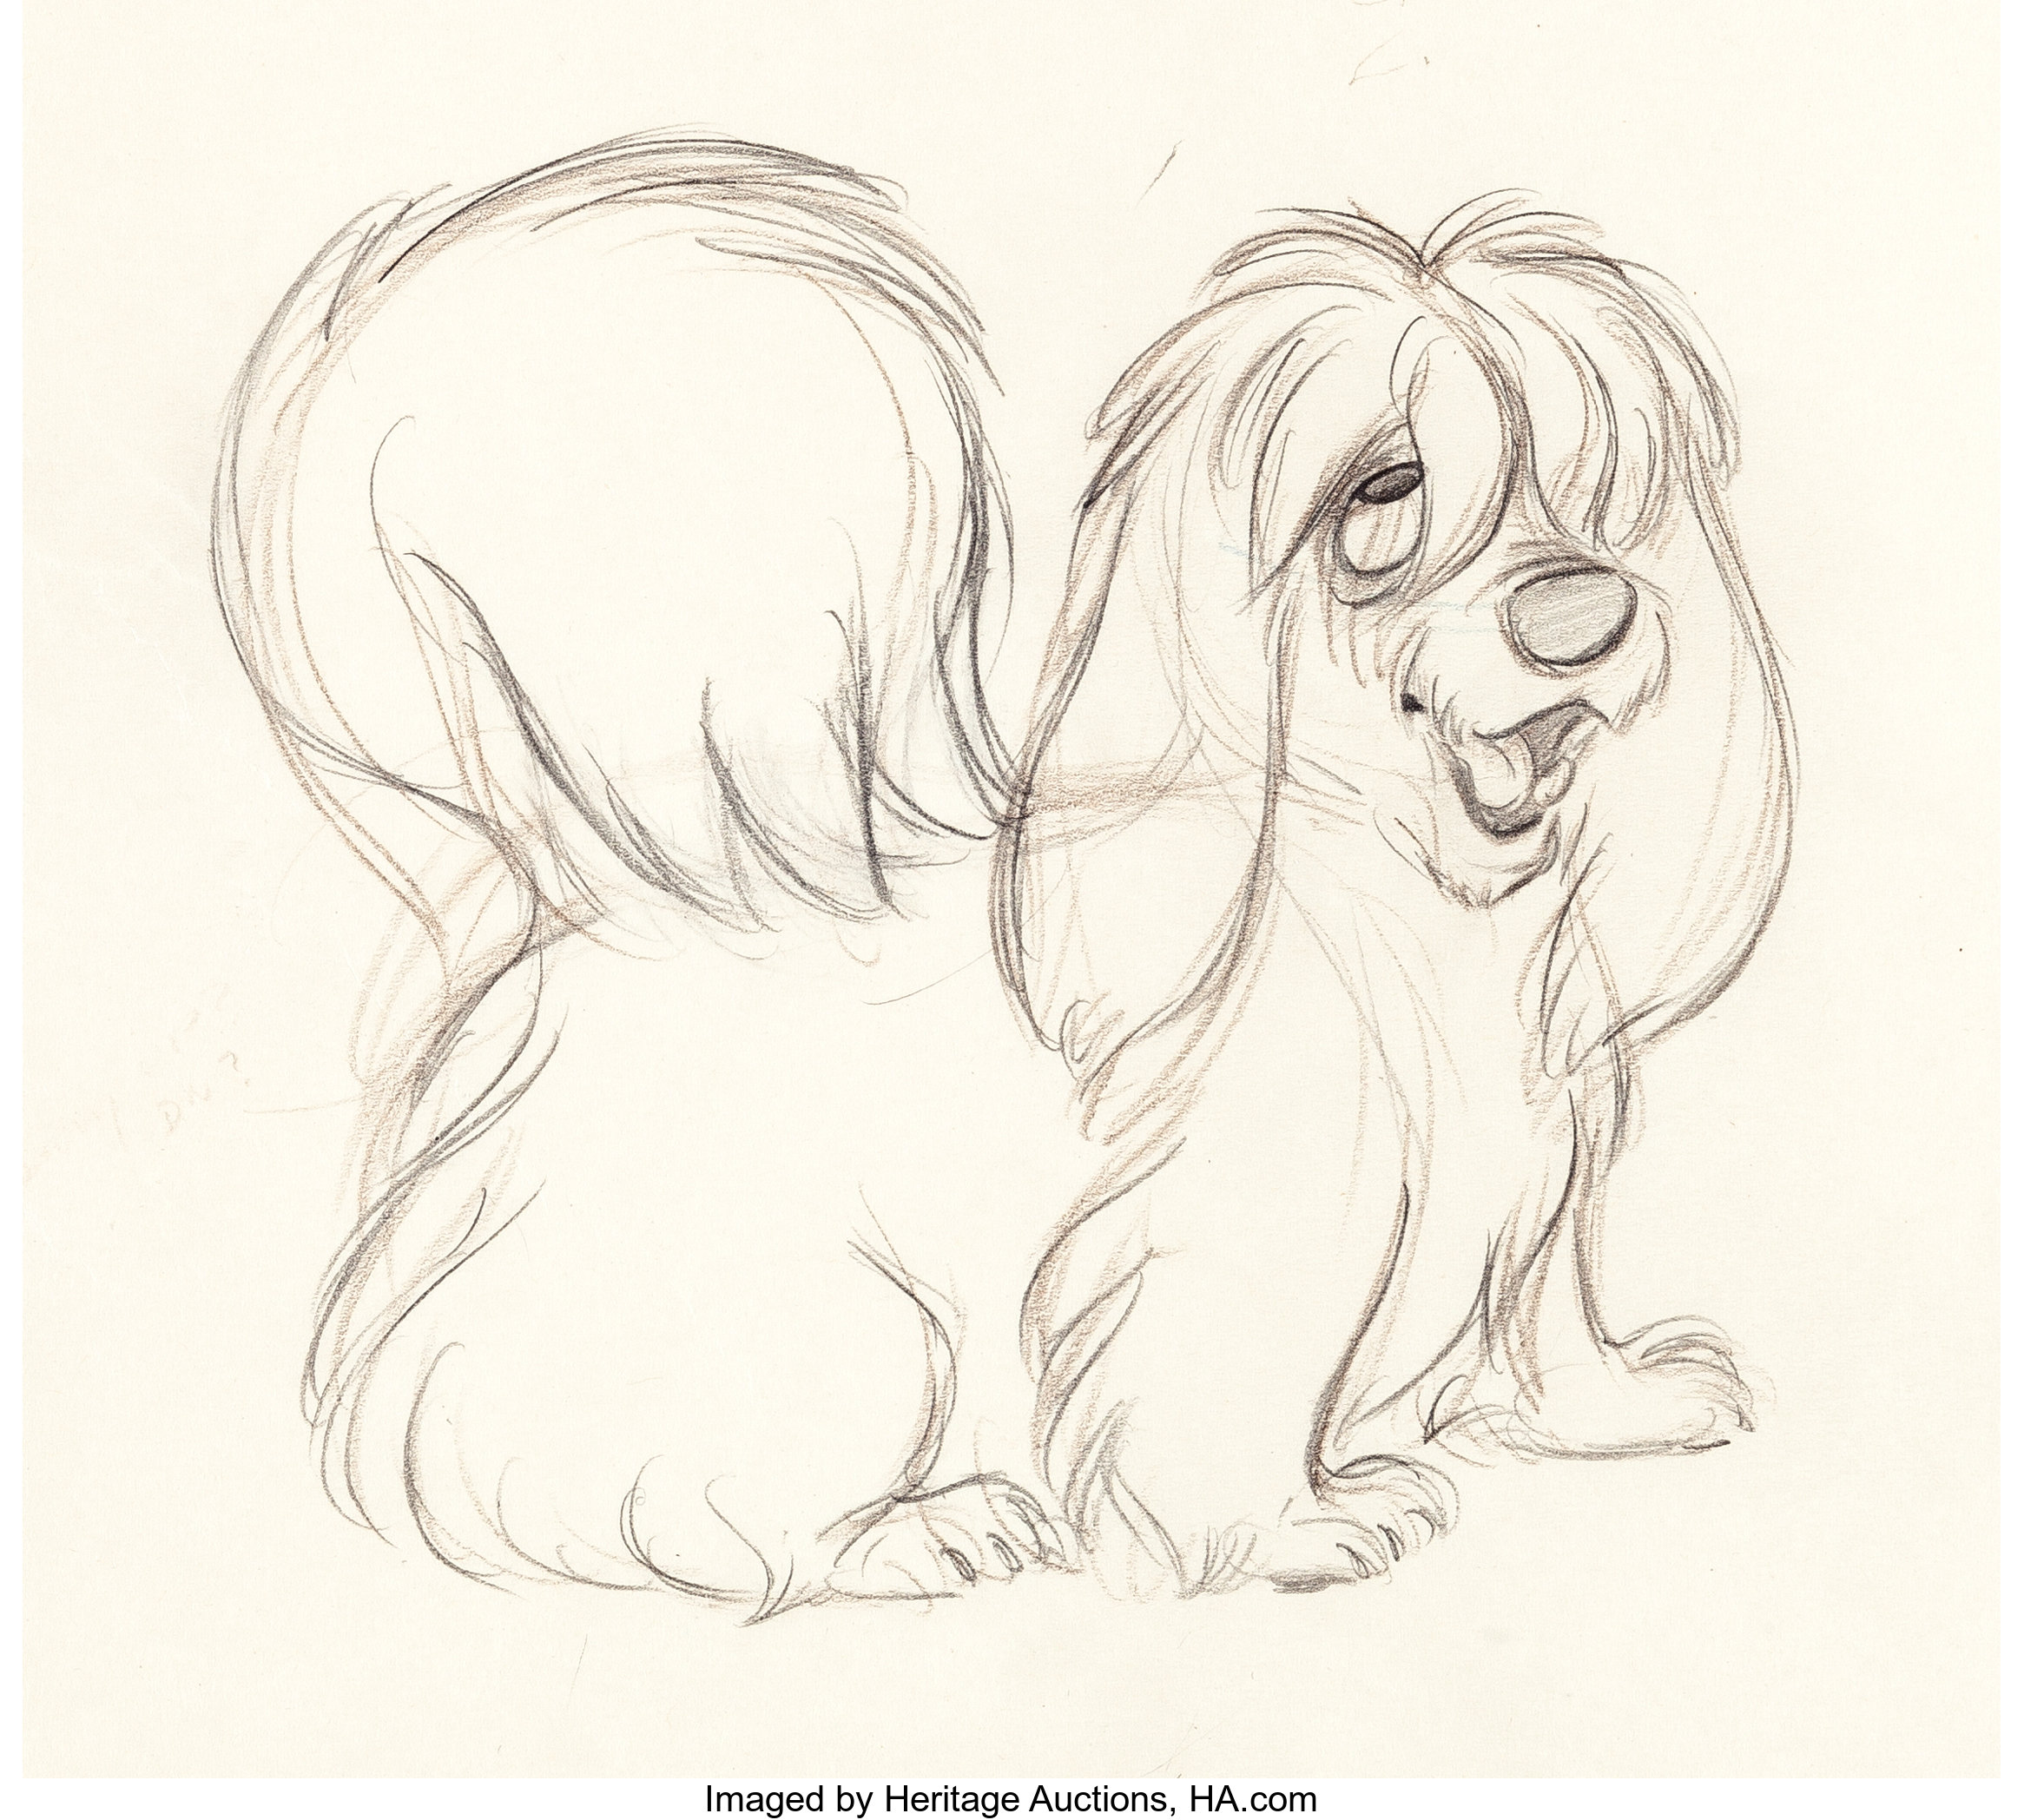 Lady And The Tramp Peg Animation Drawing Walt Disney 1955 Lot 97214 Heritage Auctions